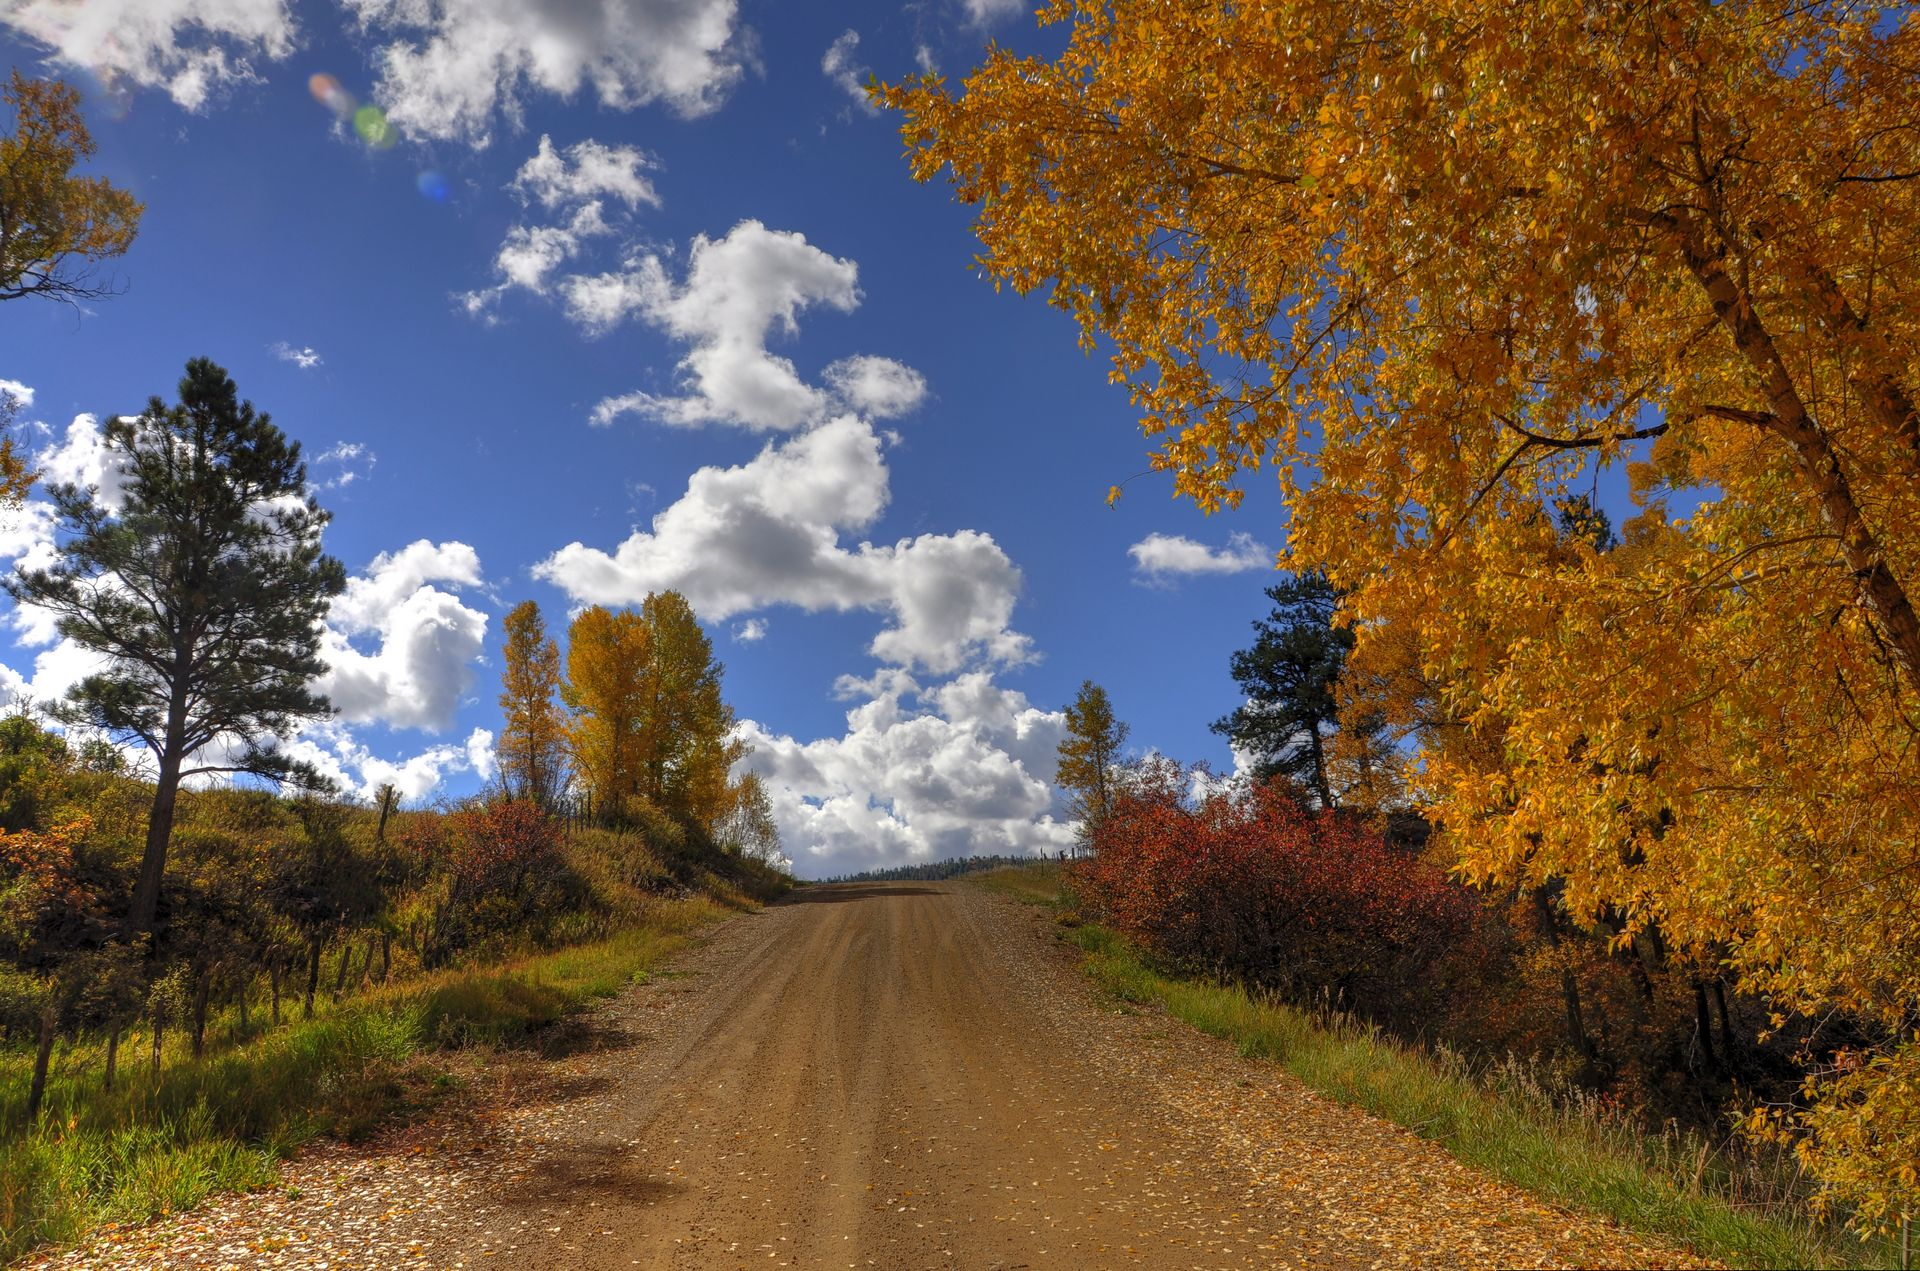 Autumn in New Mexico